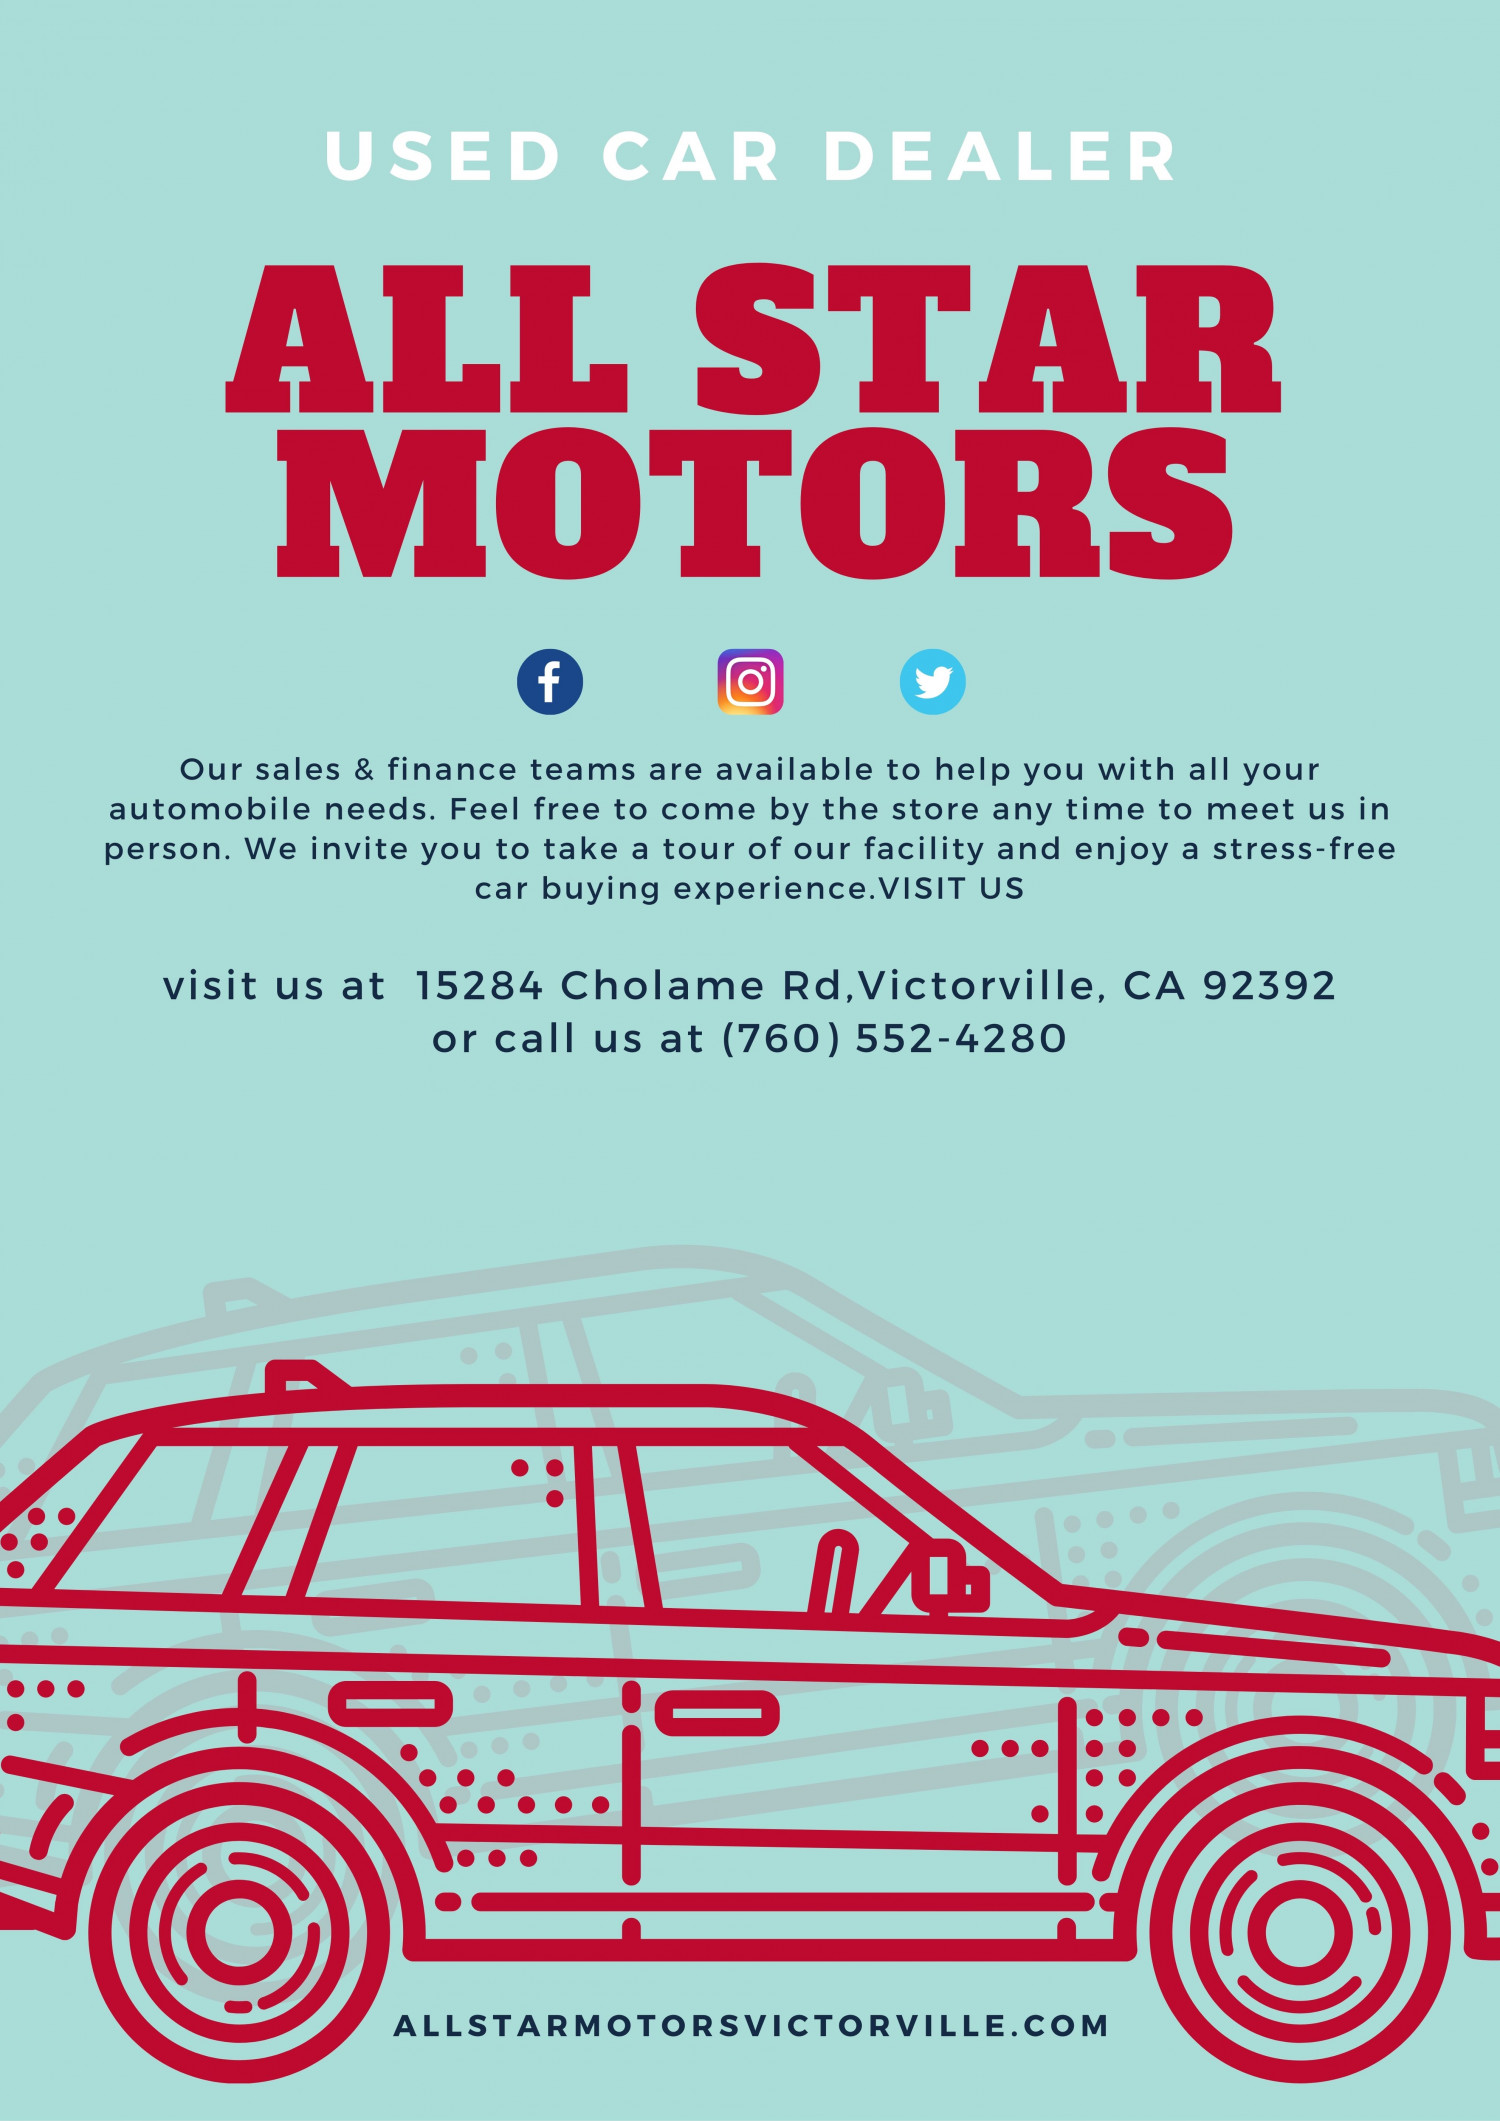 Pre-Owned Vehicles & Used Car Dealerships in Victorville CA Infographic